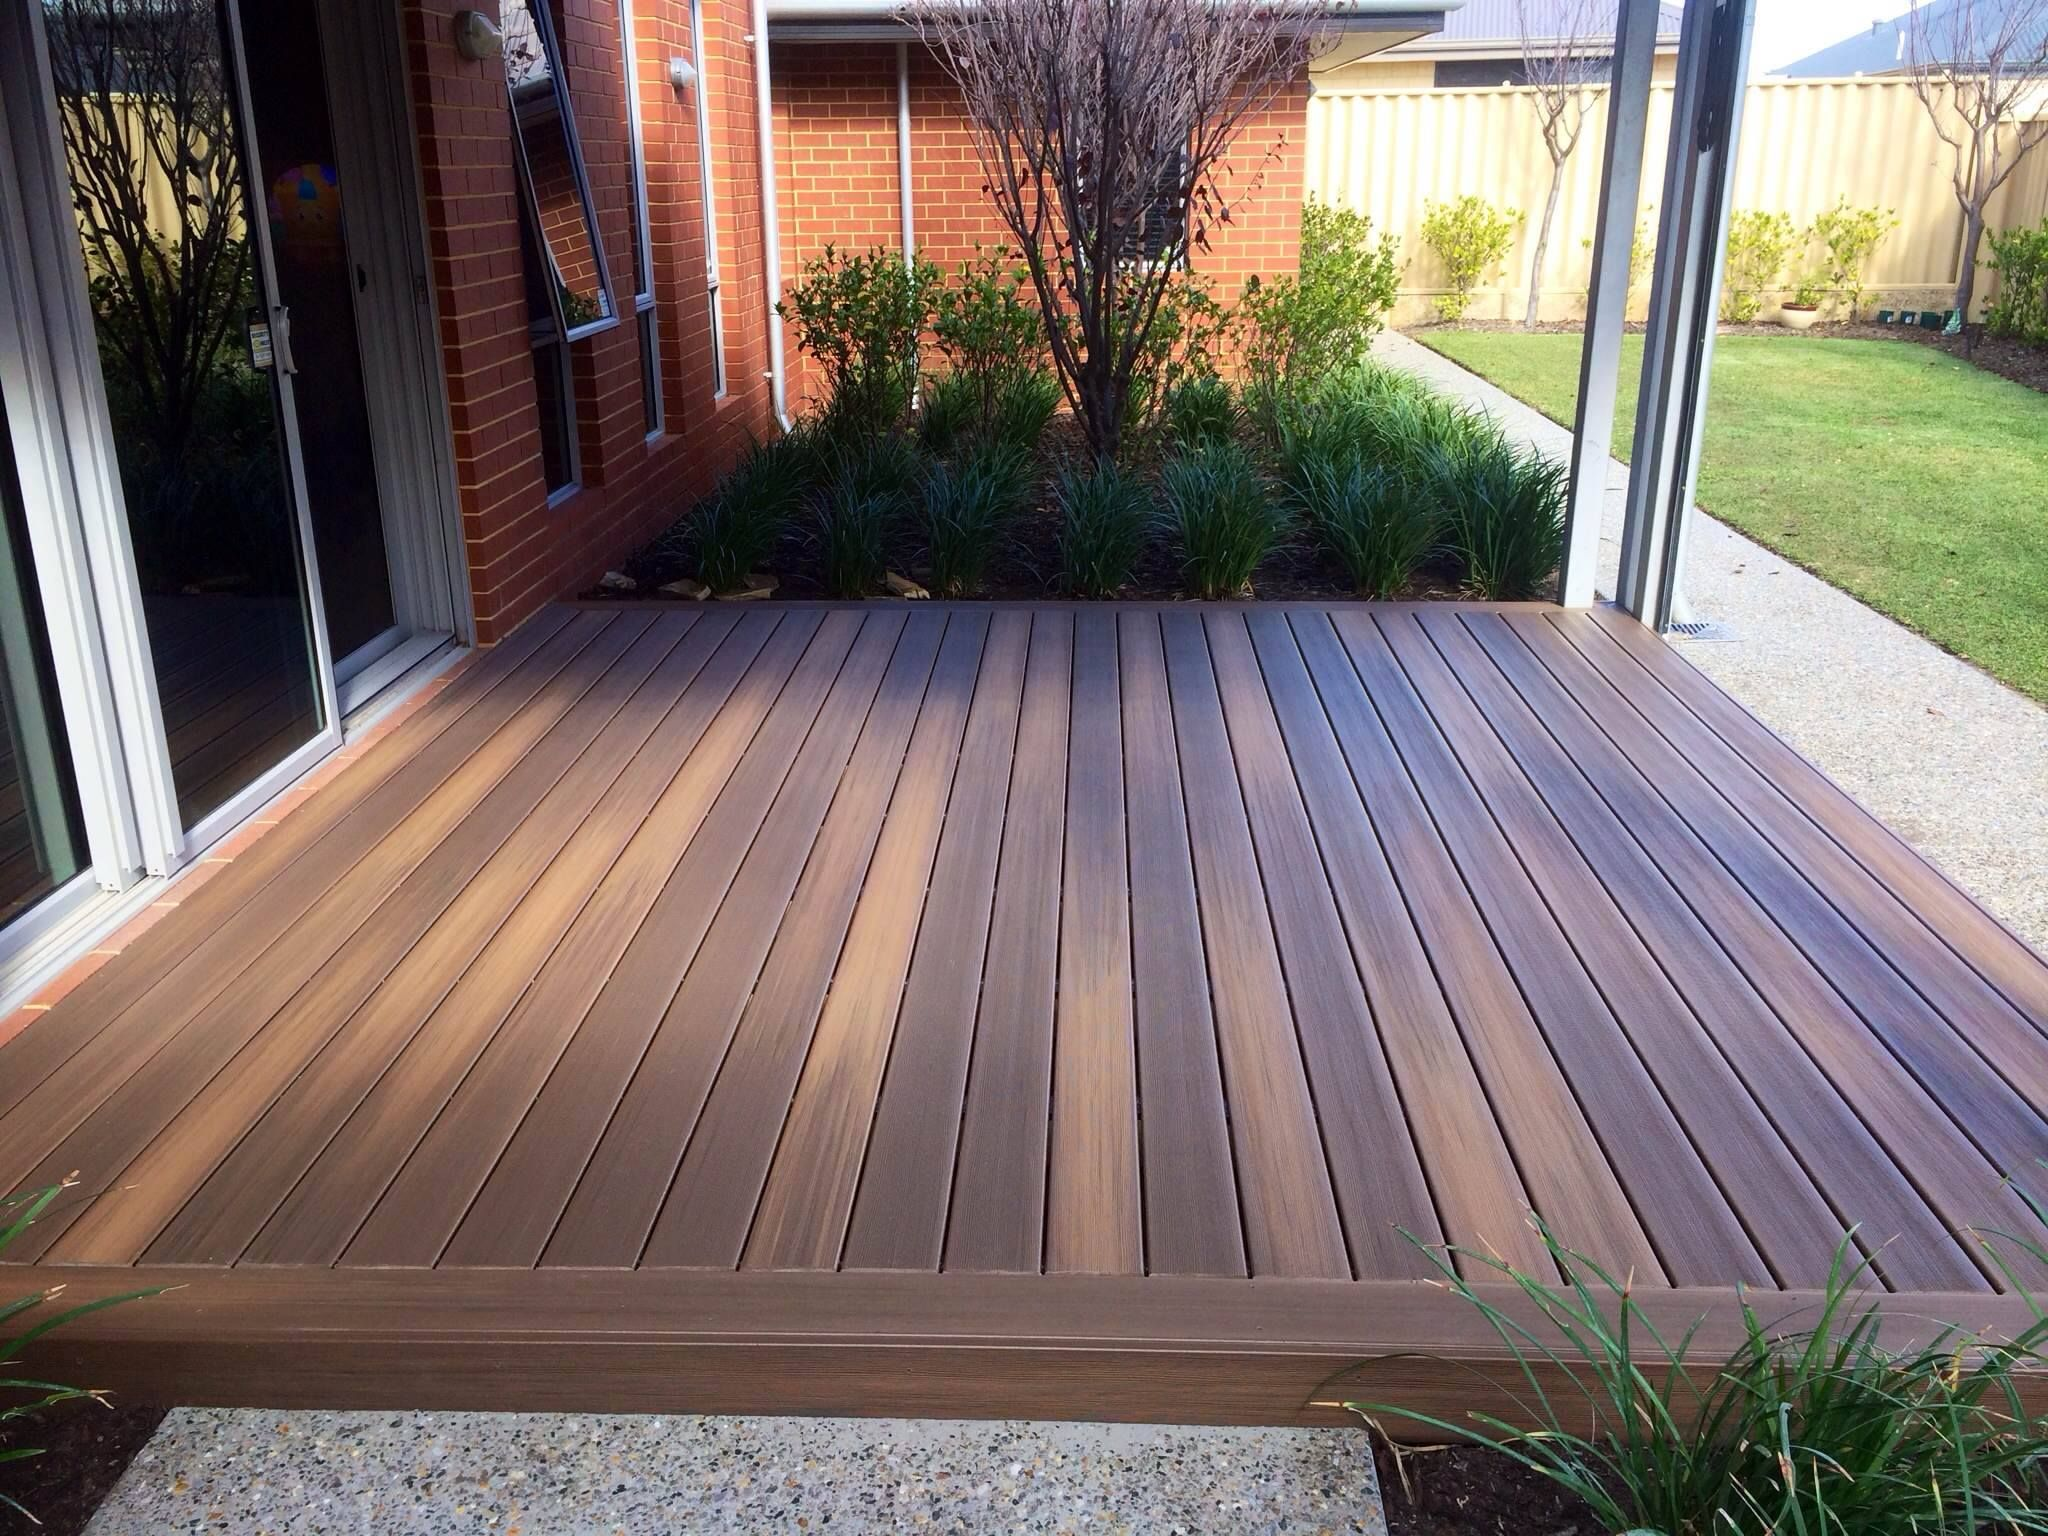 Duralife tropical walnut capped composite decking for Who makes tropics decking